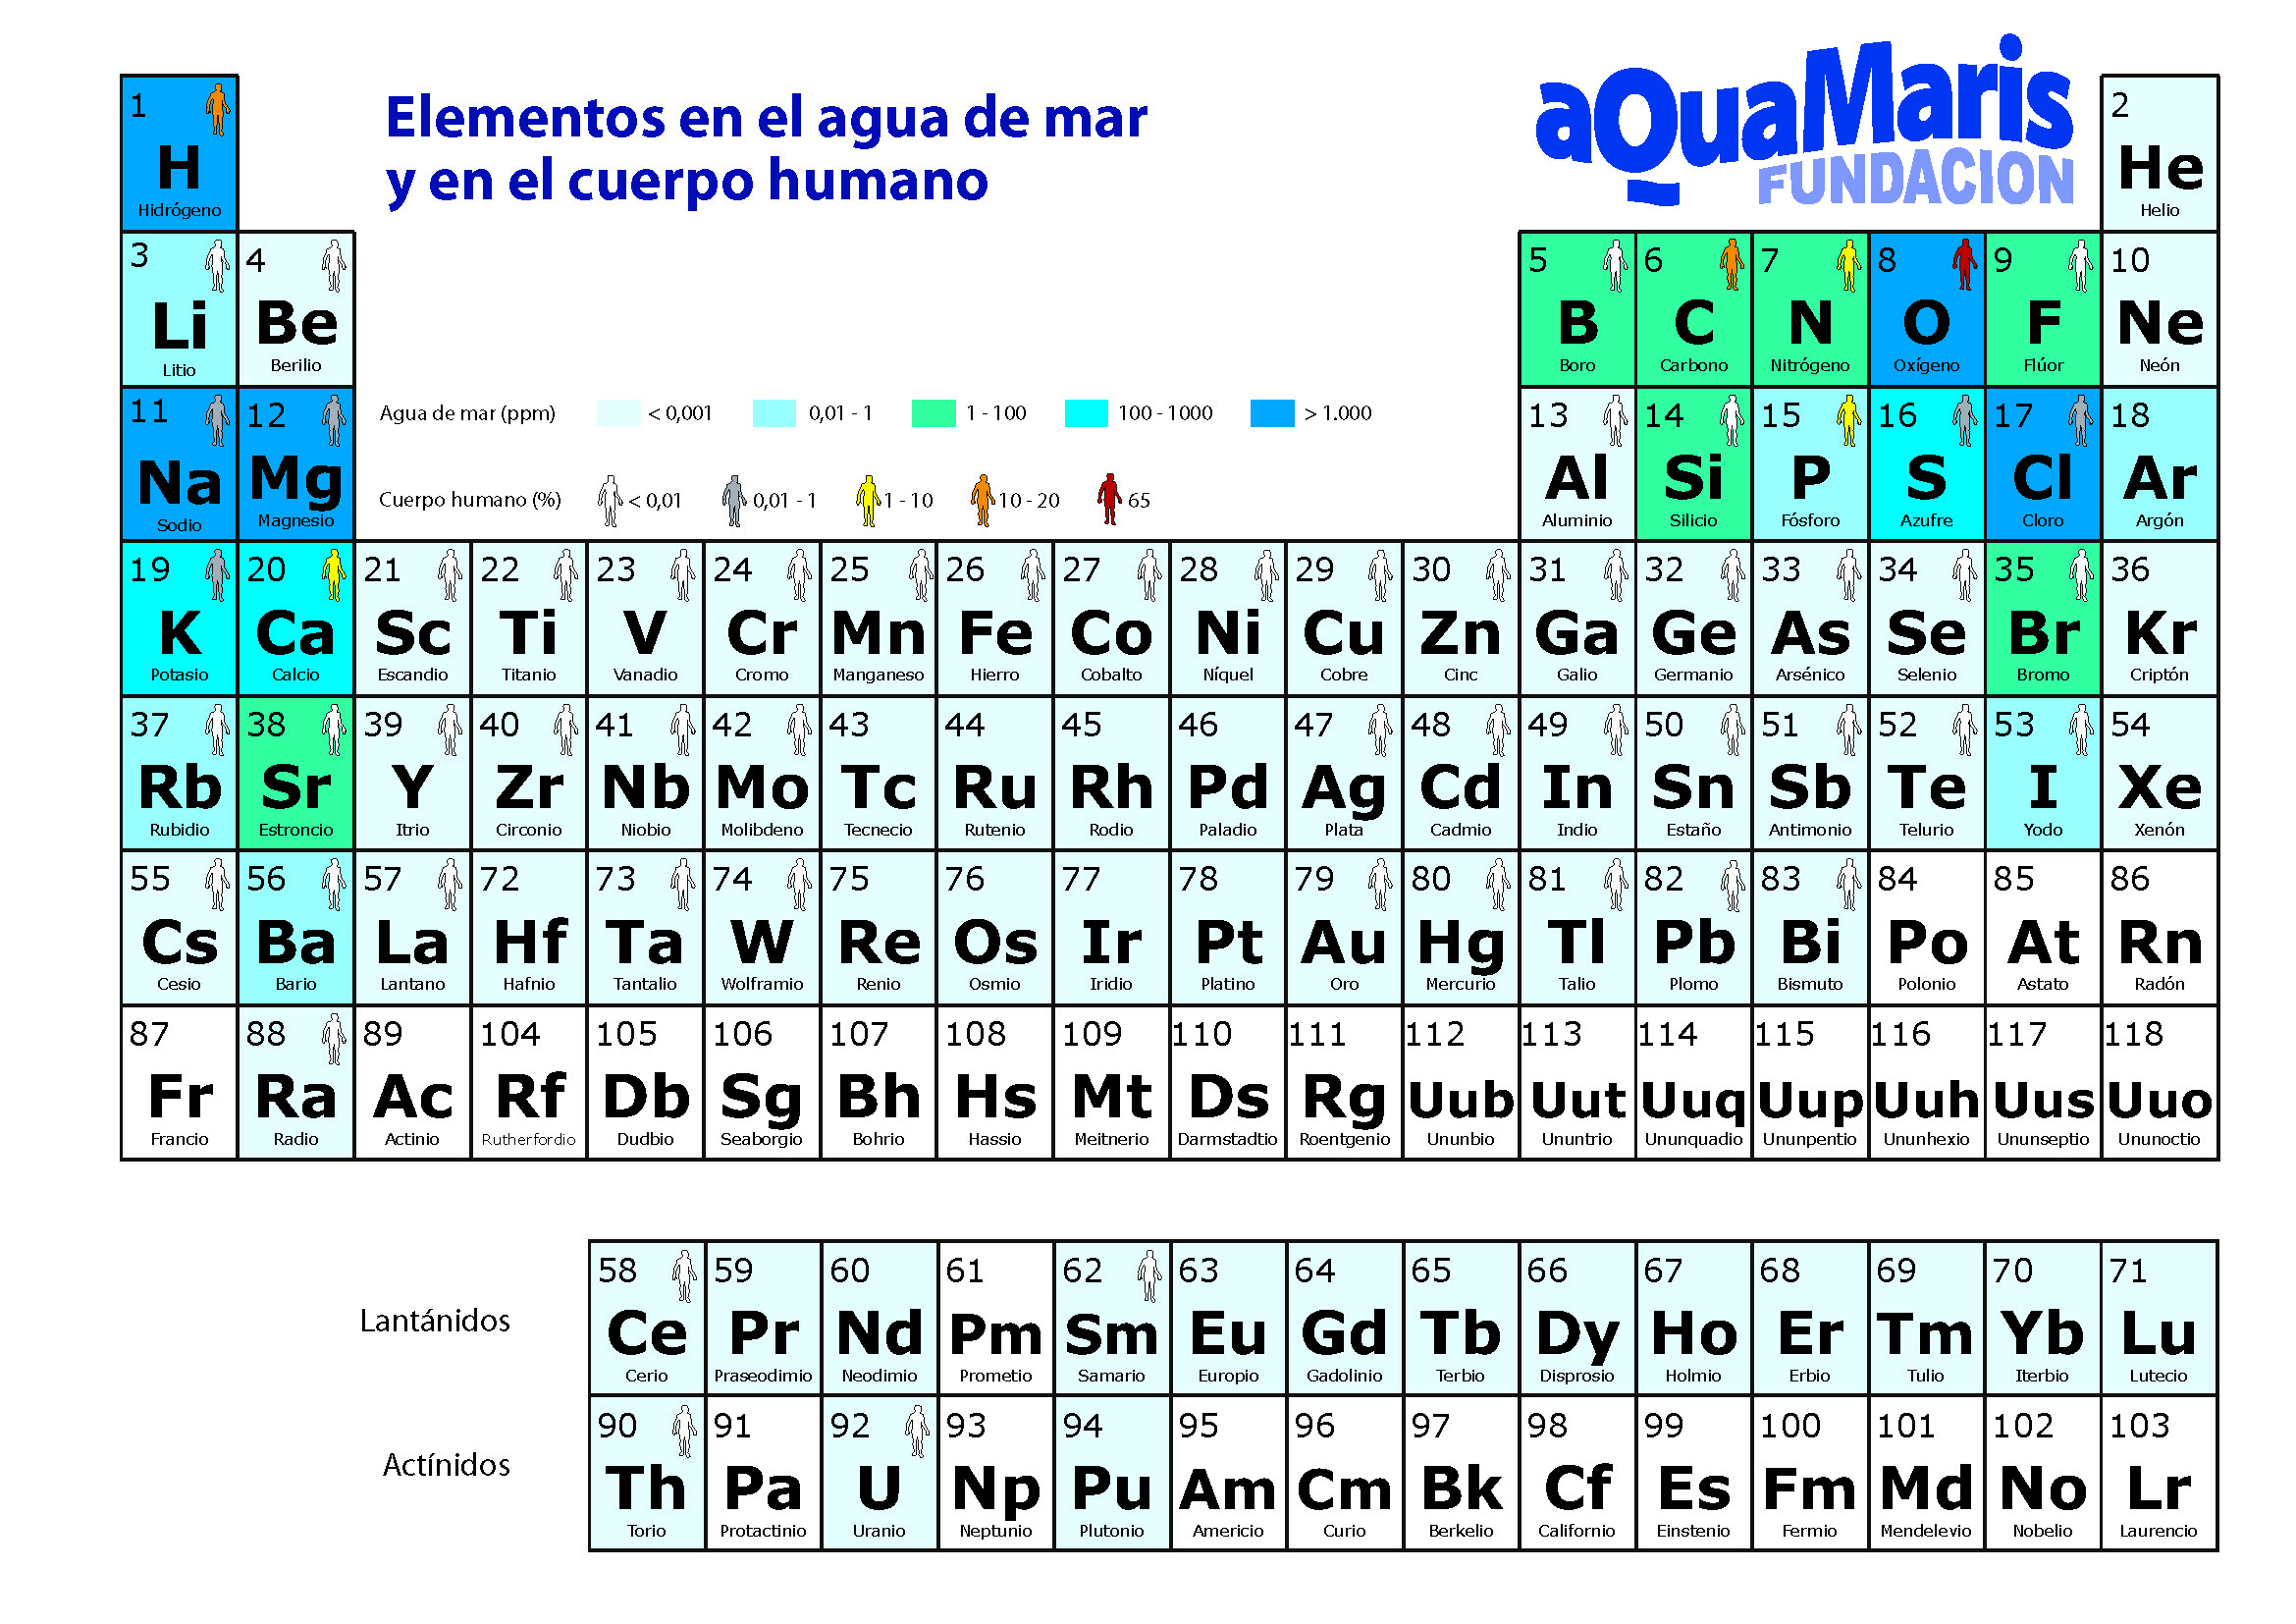 Tabla periodica bien completa choice image periodic table and el agua de mar adentra mms per salud tablaperiodicaact copia flavorsomefo choice image urtaz Gallery